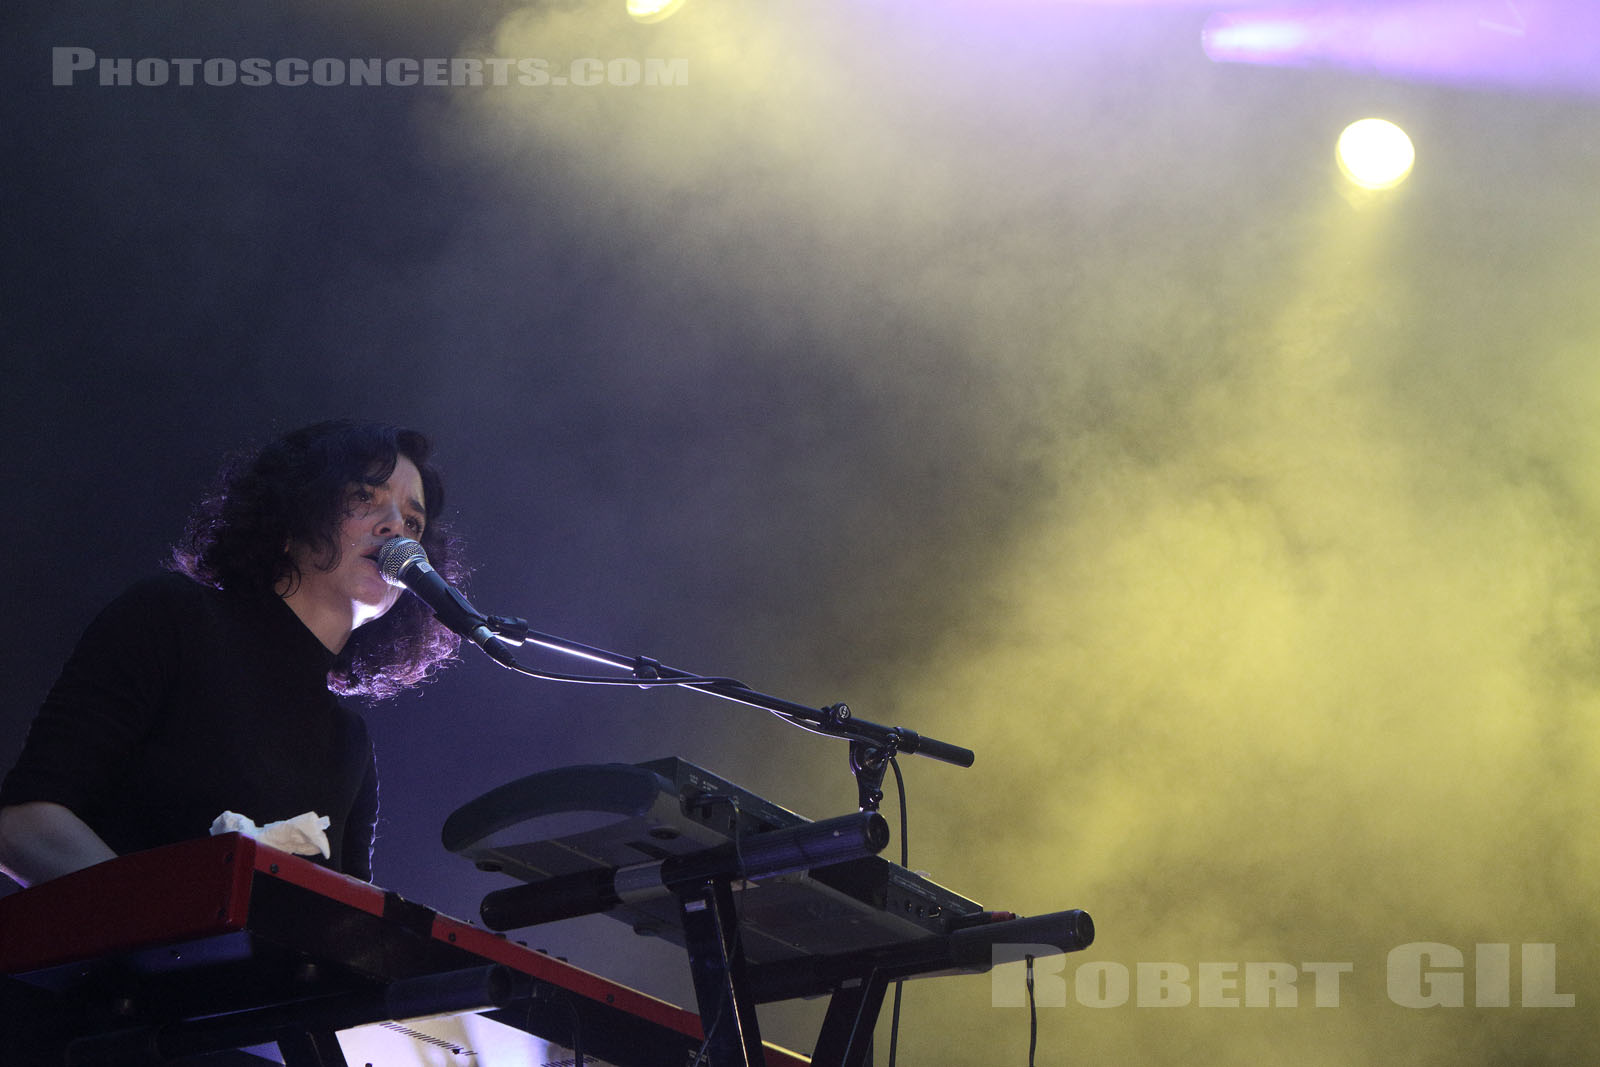 JUNIORE - 2016-07-07 - PARIS - Philharmonie de Paris 2